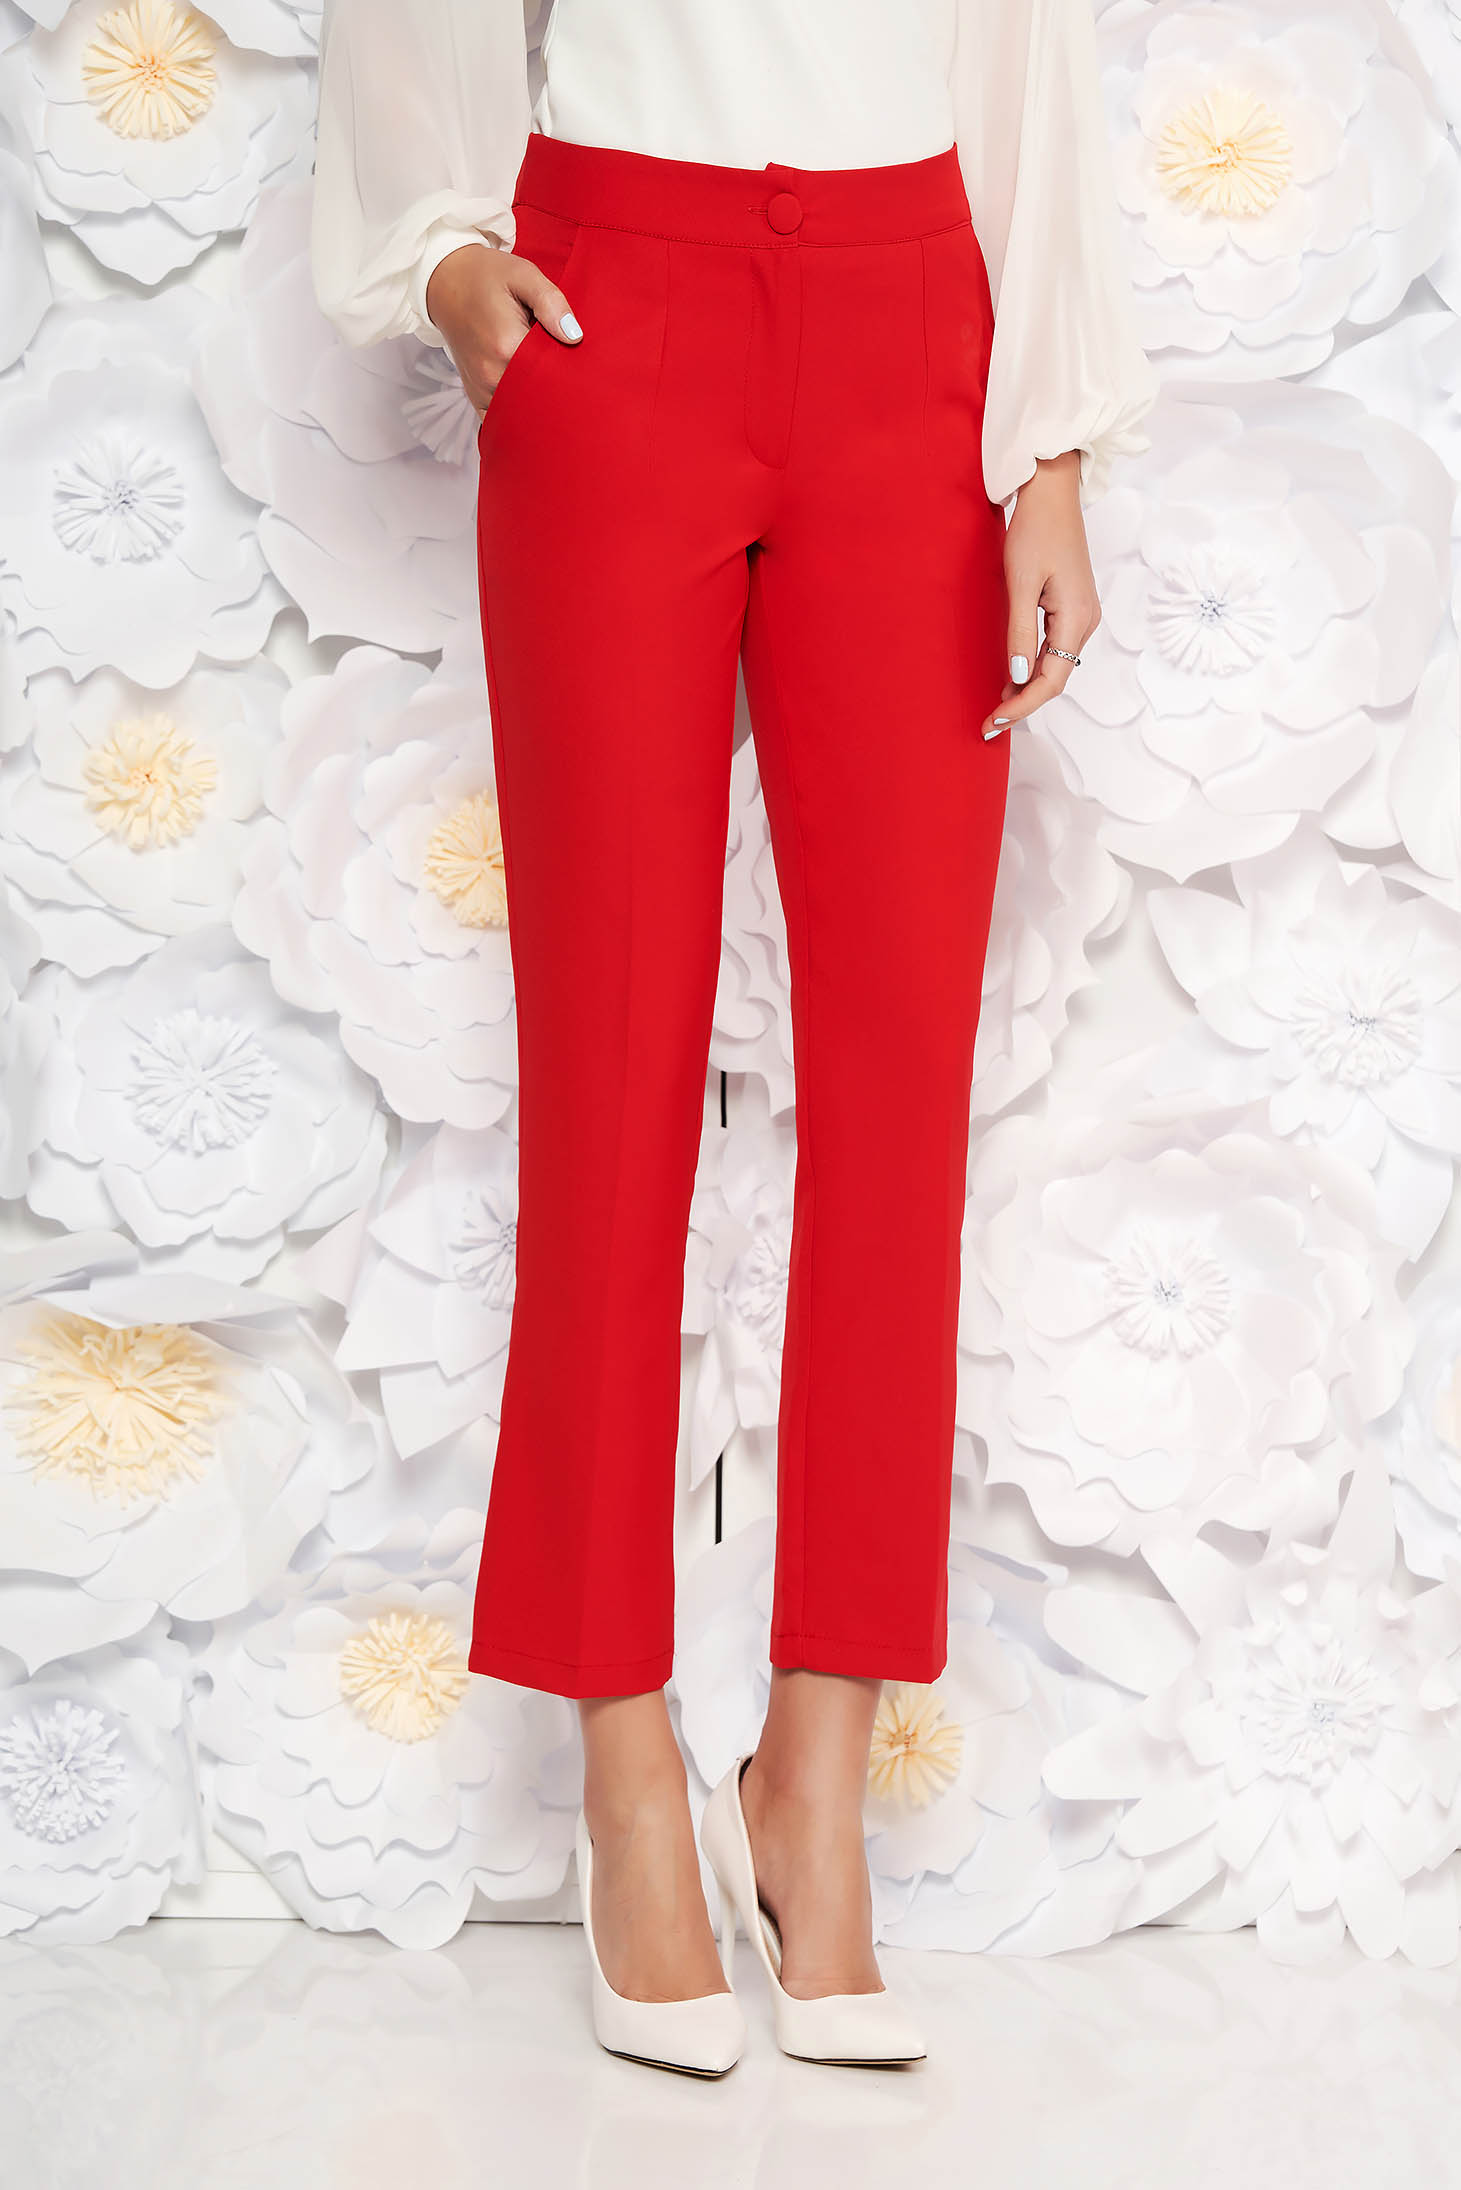 Red office trousers with pockets medium waist slightly elastic fabric with straight cut